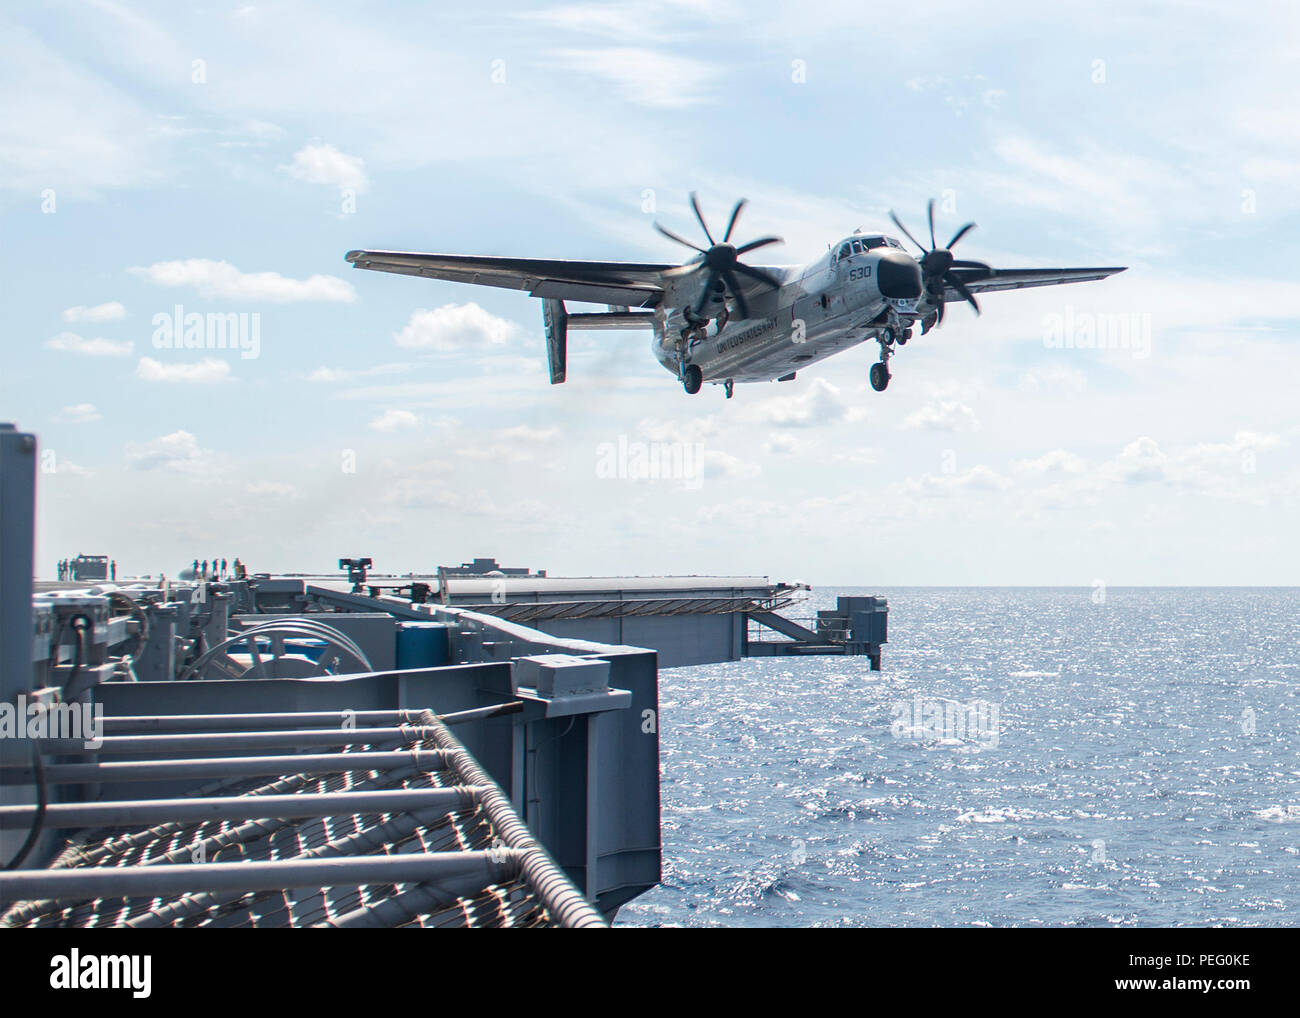 150814-N-MQ094-848 ATLANTIC OCEAN (Aug. 14, 2015) A C-2A Greyhound assigned to the Rawhides of Fleet Logistic Support Squadron (VRC) 40 flies over the flight deck of the aircraft carrier USS Harry S. Truman (CVN 75). Harry S. Truman is underway conducting carrier qualifications in preparation for its upcoming deployment. (U.S. Navy photo by Mass Communication Specialist 3rd Class E. T. Miller/Released) - Stock Image